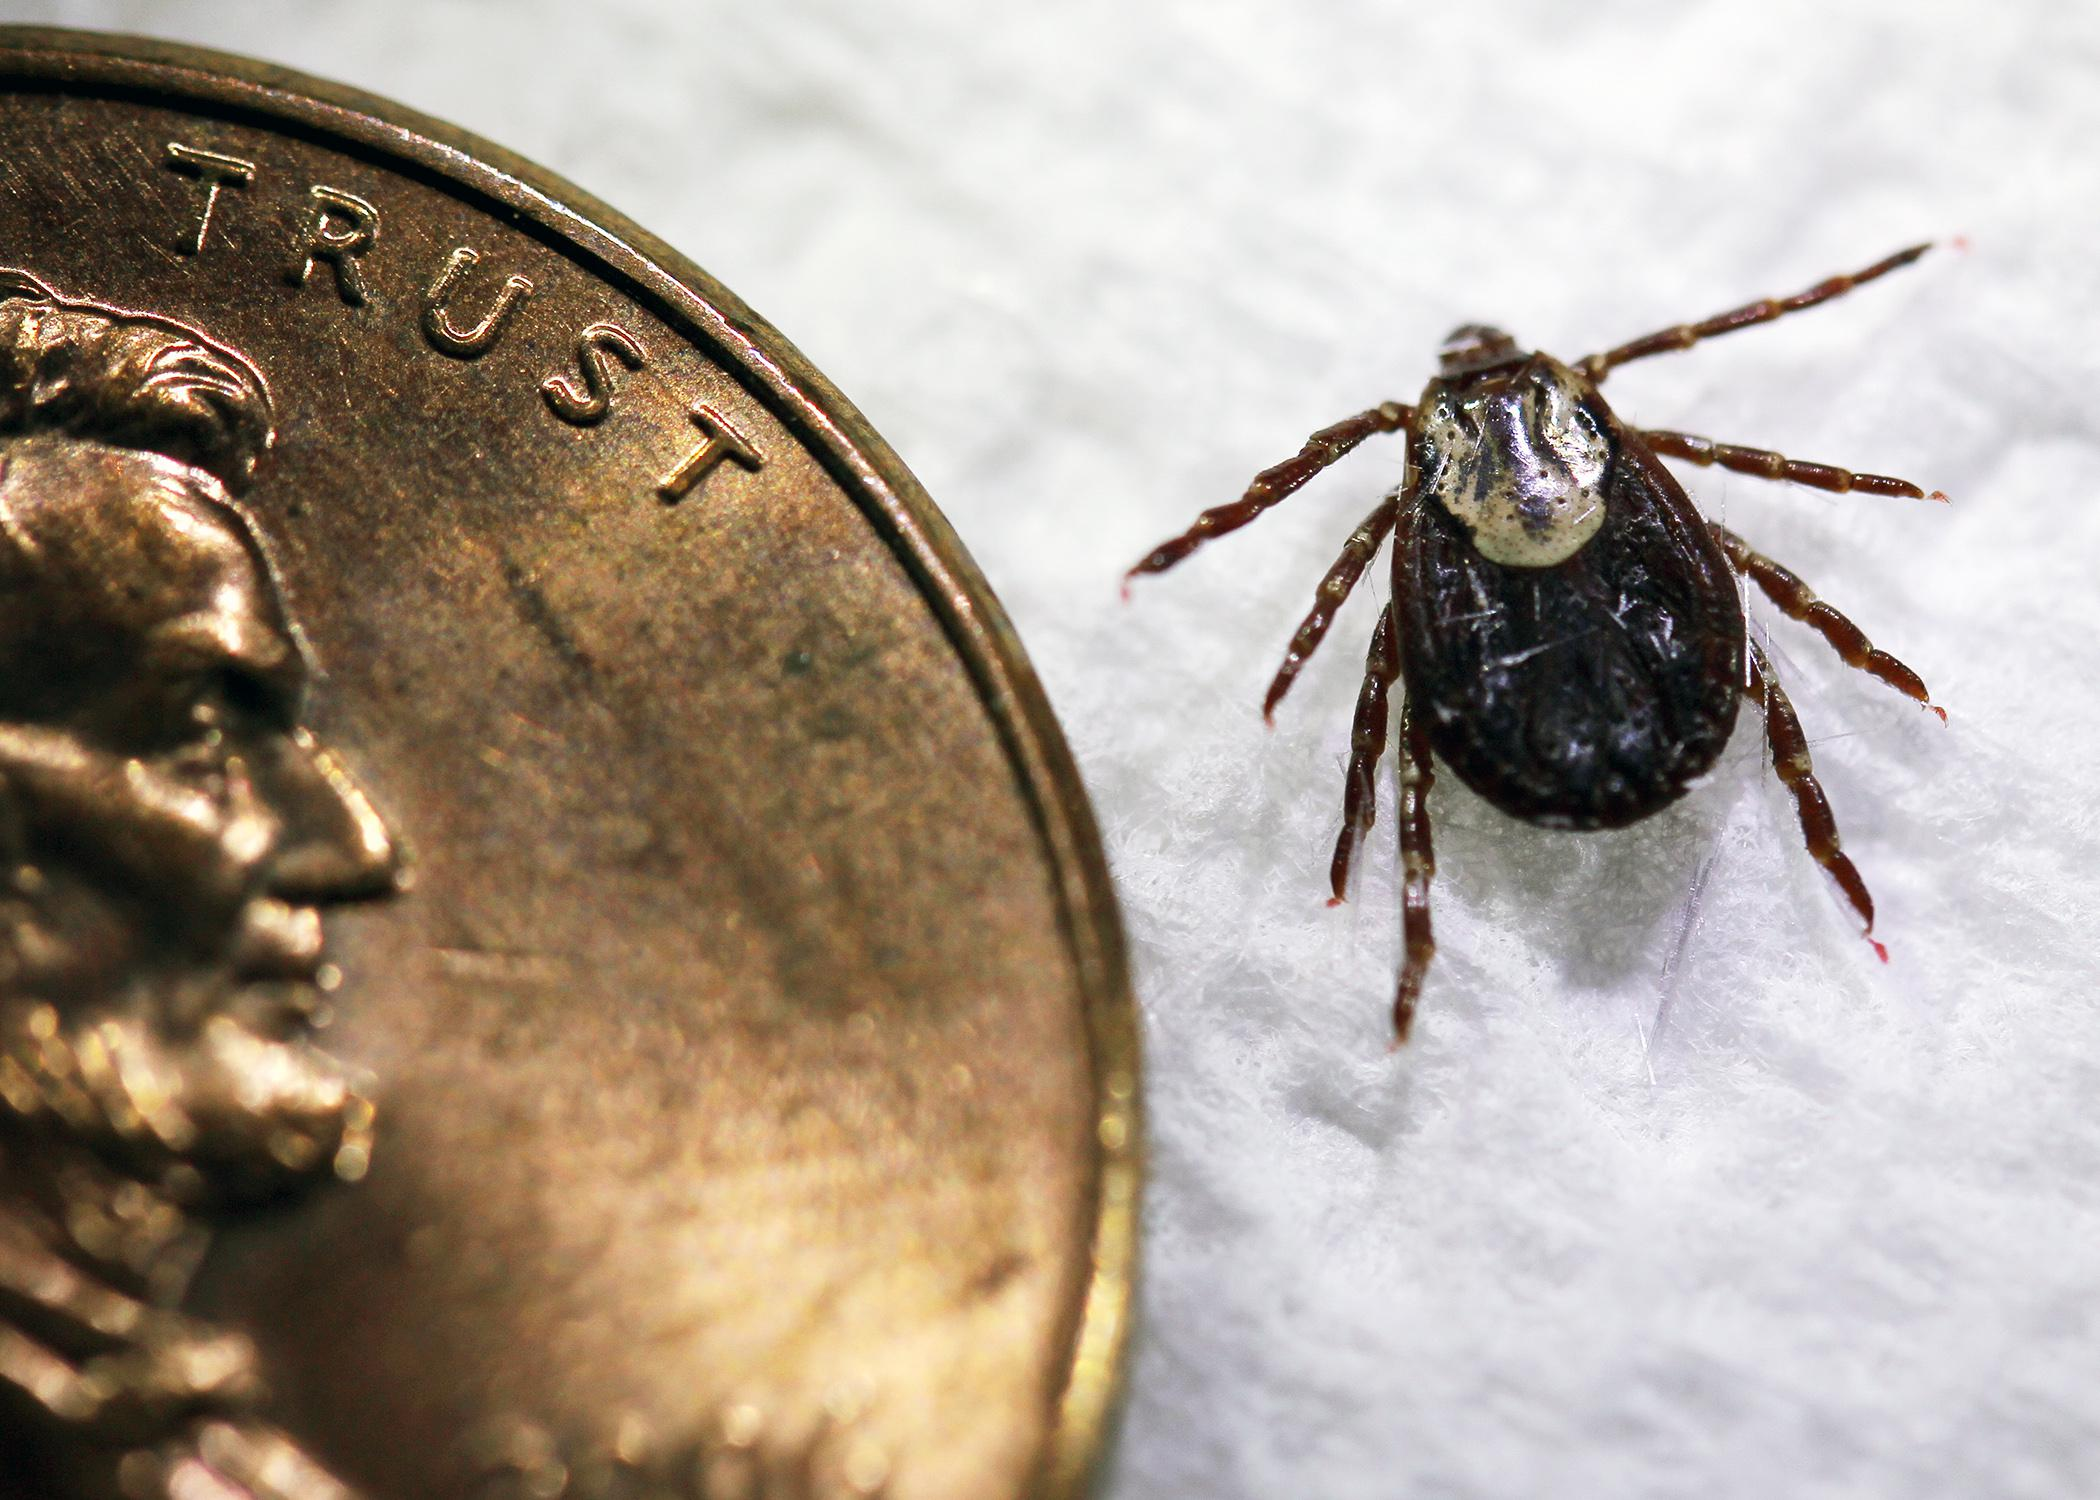 American dog ticks, such as this adult female, are one of 19 species of the disease-carrying parasite found in Mississippi. (Photo courtesy of Marina Denny)